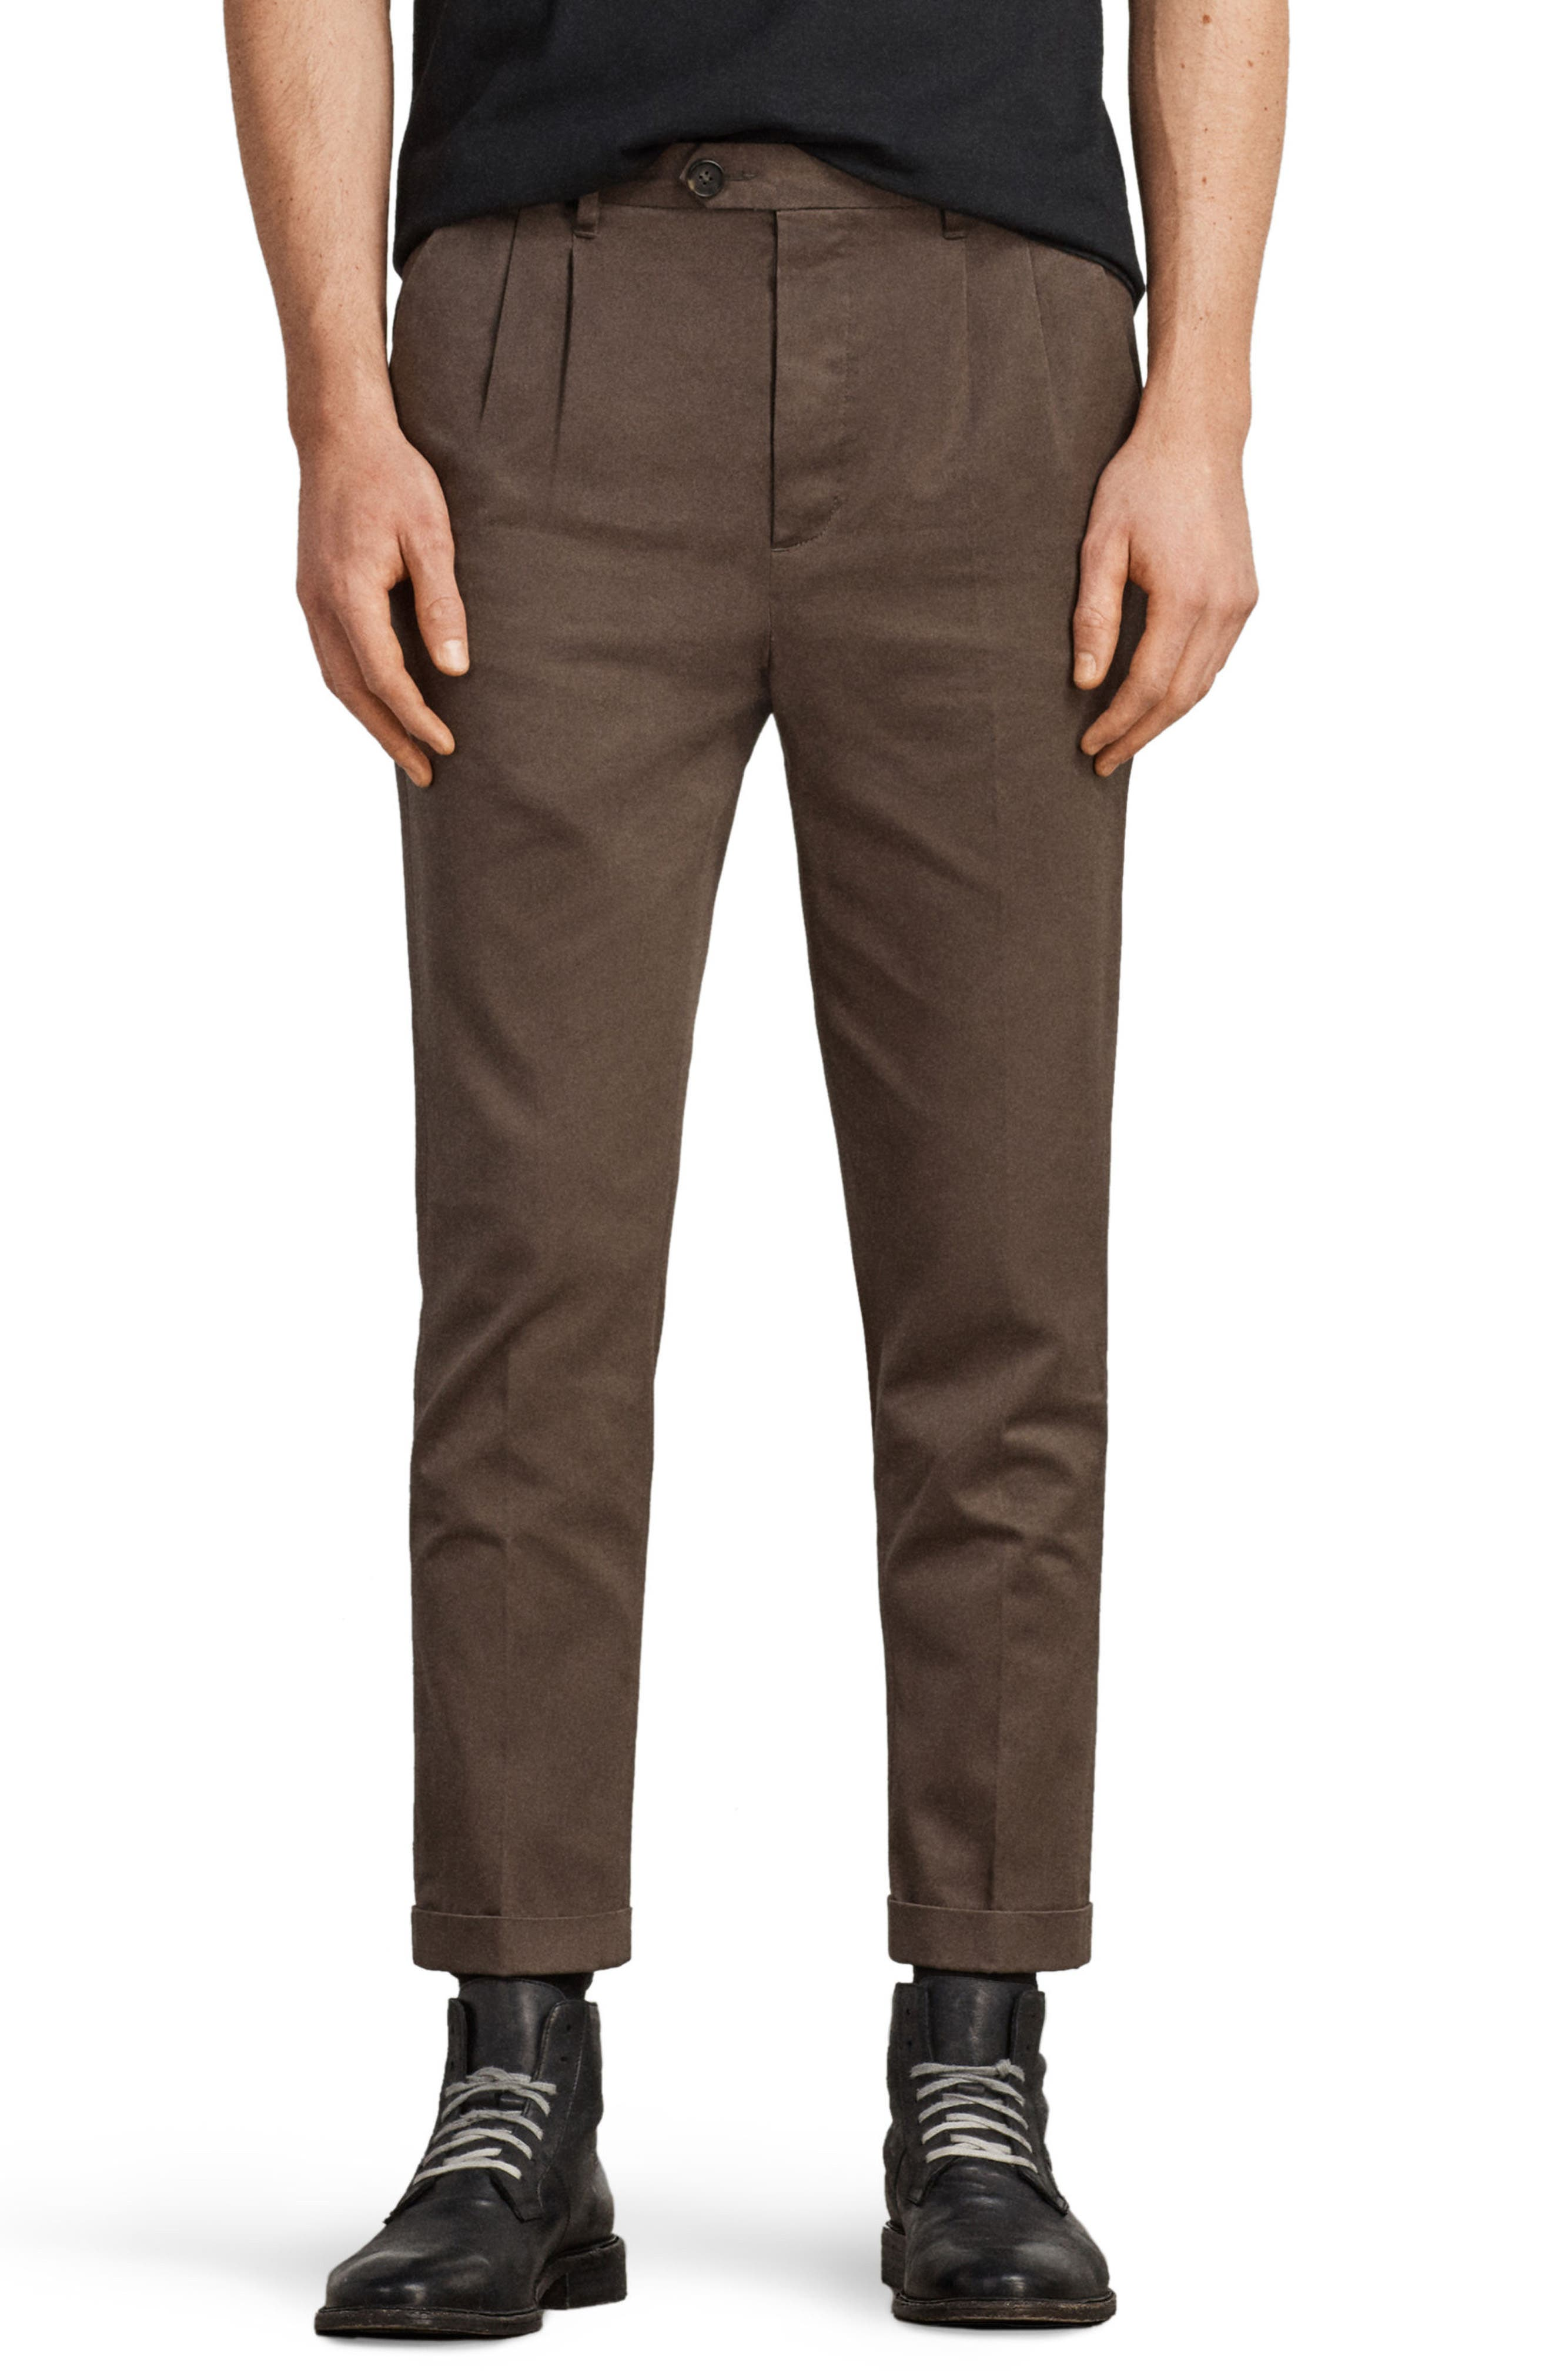 Salco Slim Fit Chino Pants,                             Main thumbnail 1, color,                             Khaki Green